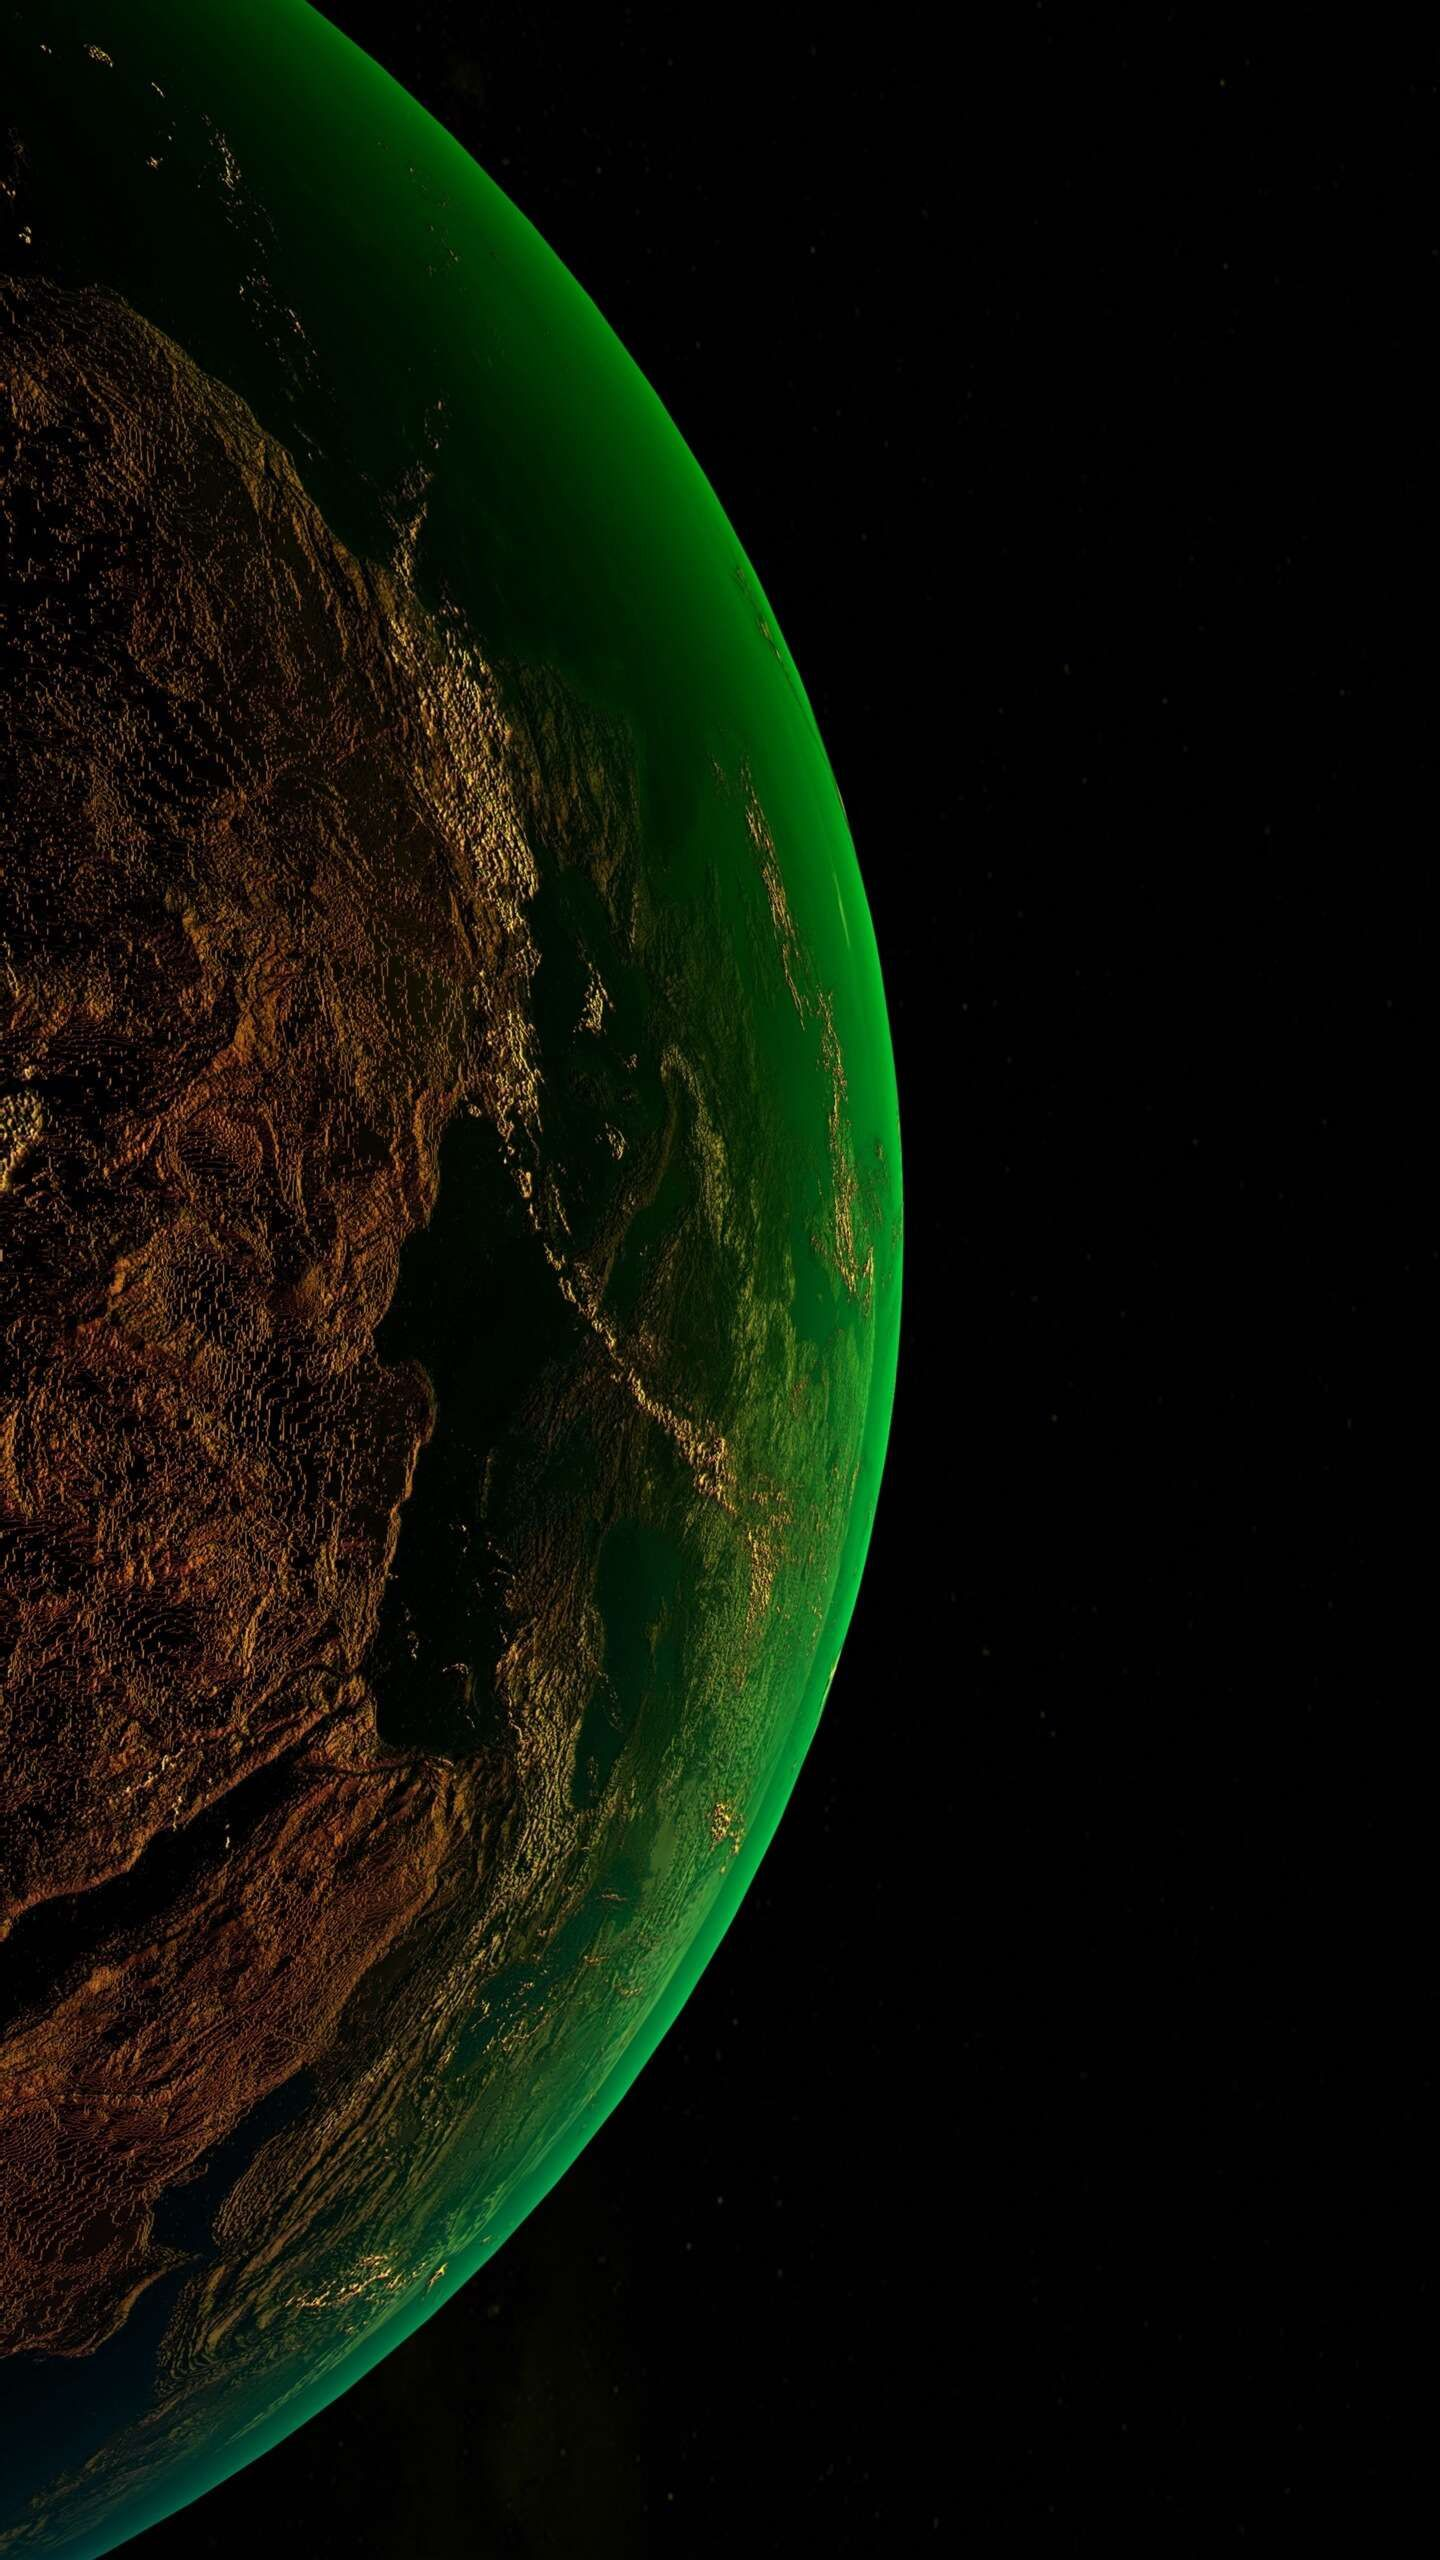 Green Planet Iphone Wallpaper Oneplus Wallpapers Iphone